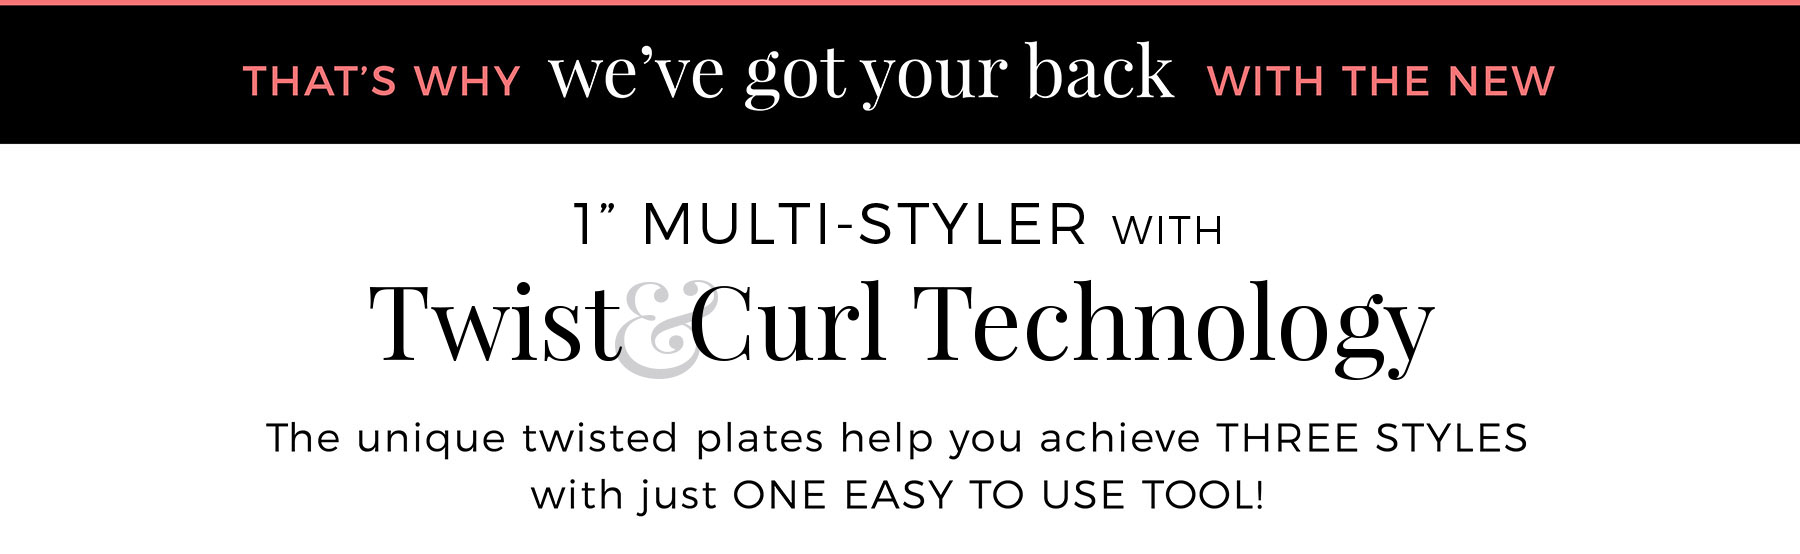 That's why we've got your back with the New 1 Inch Multi-Styler with Twist&Curl Technology. The Unique Twisted plates help you achieve THREE STYLES with just ONE EASY TO USE TOOL!